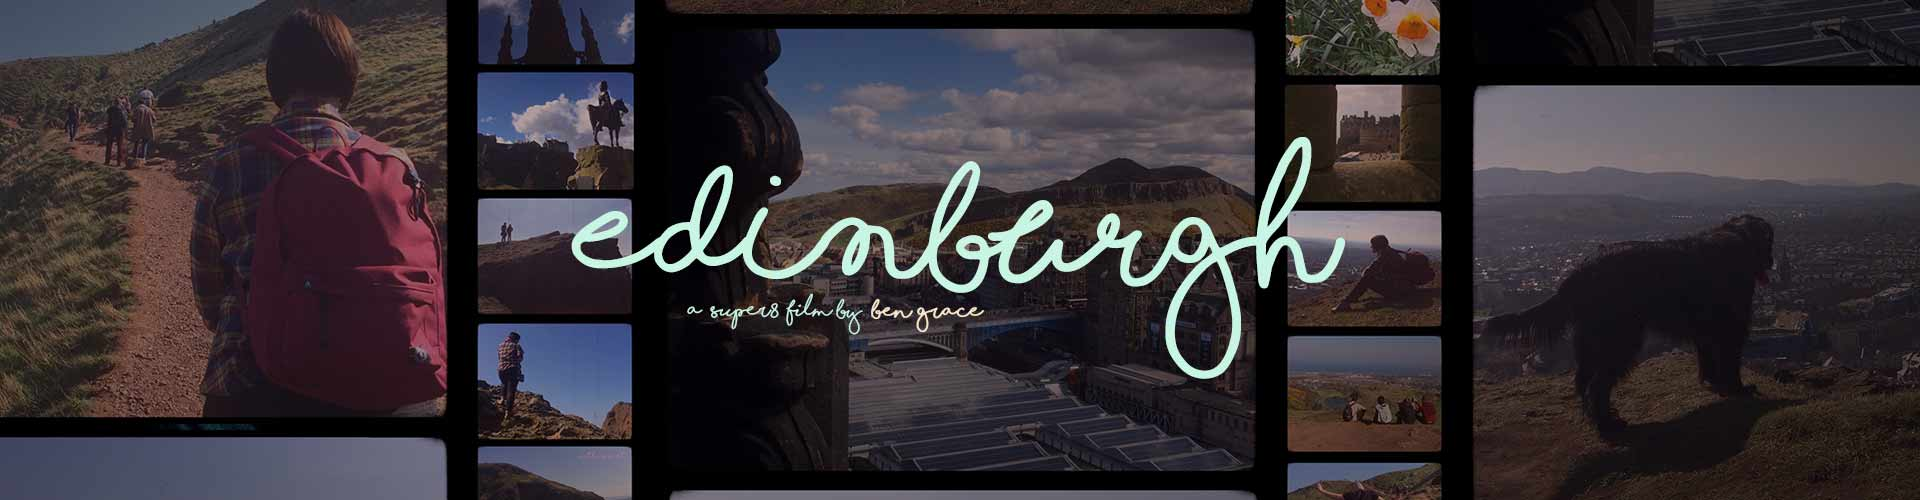 Edinburgh| Postcards From... |Ben Grace Films | BenGrace.co.uk